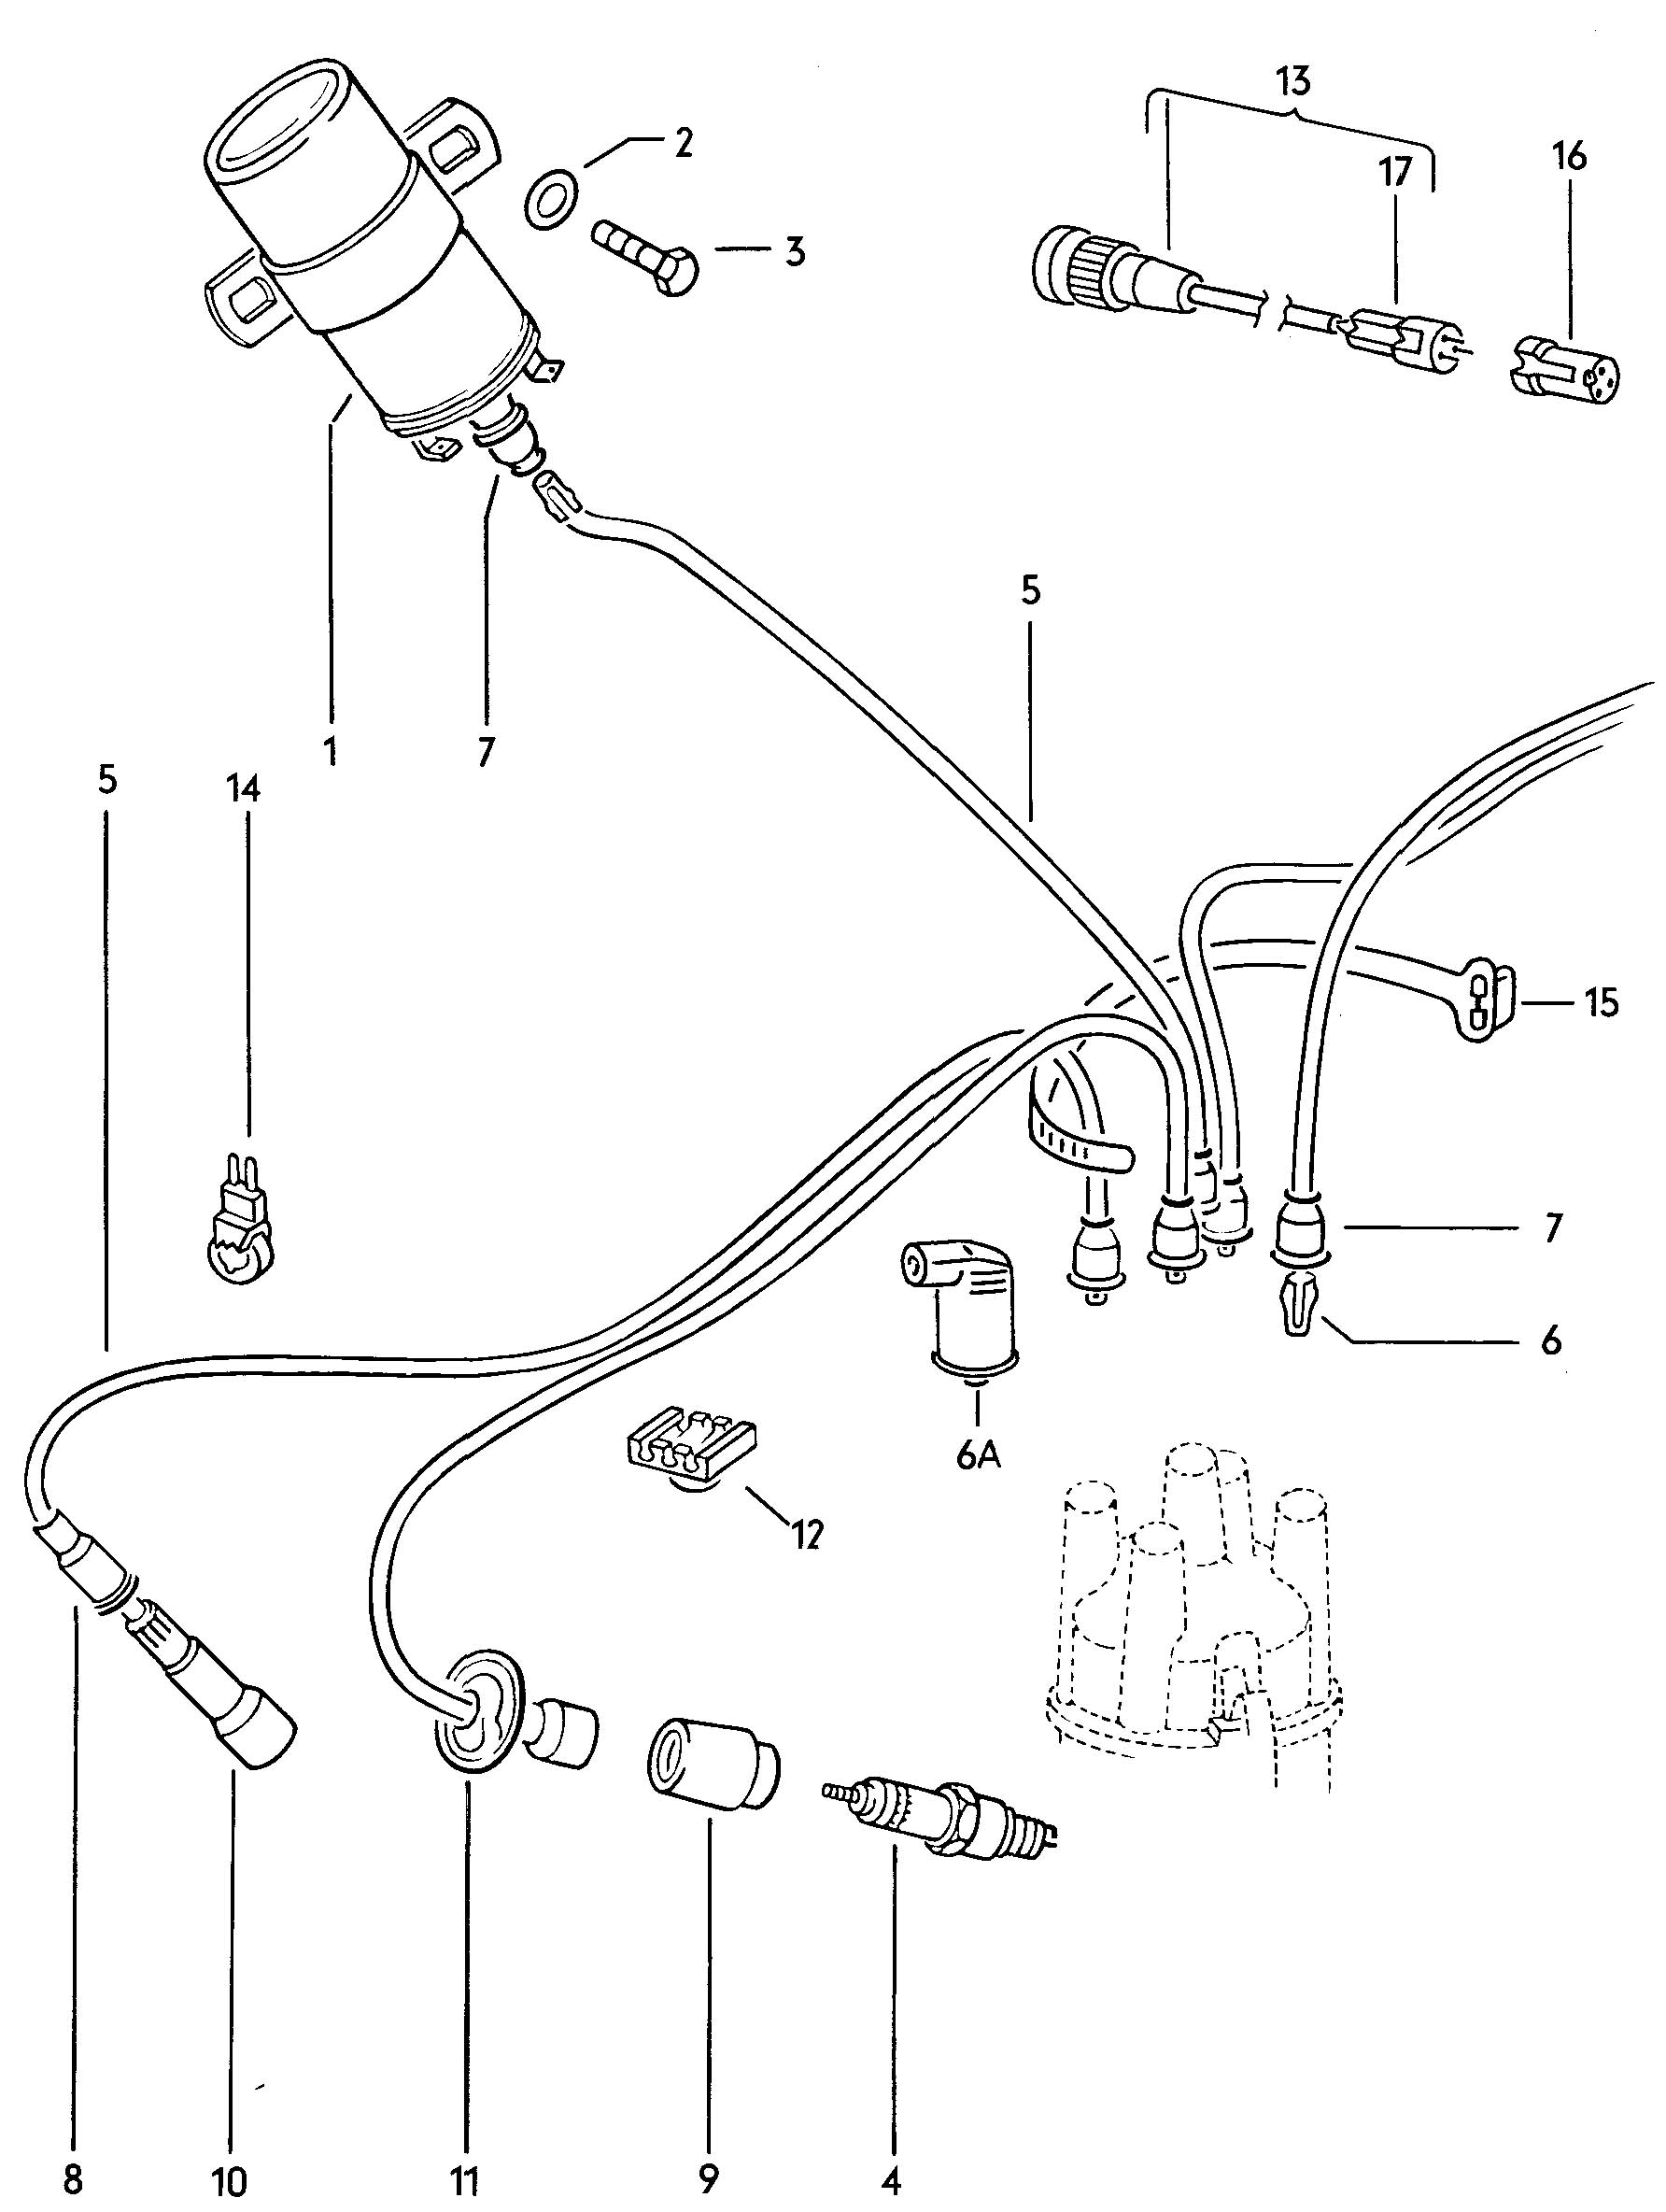 1956 vw bug wiring diagram